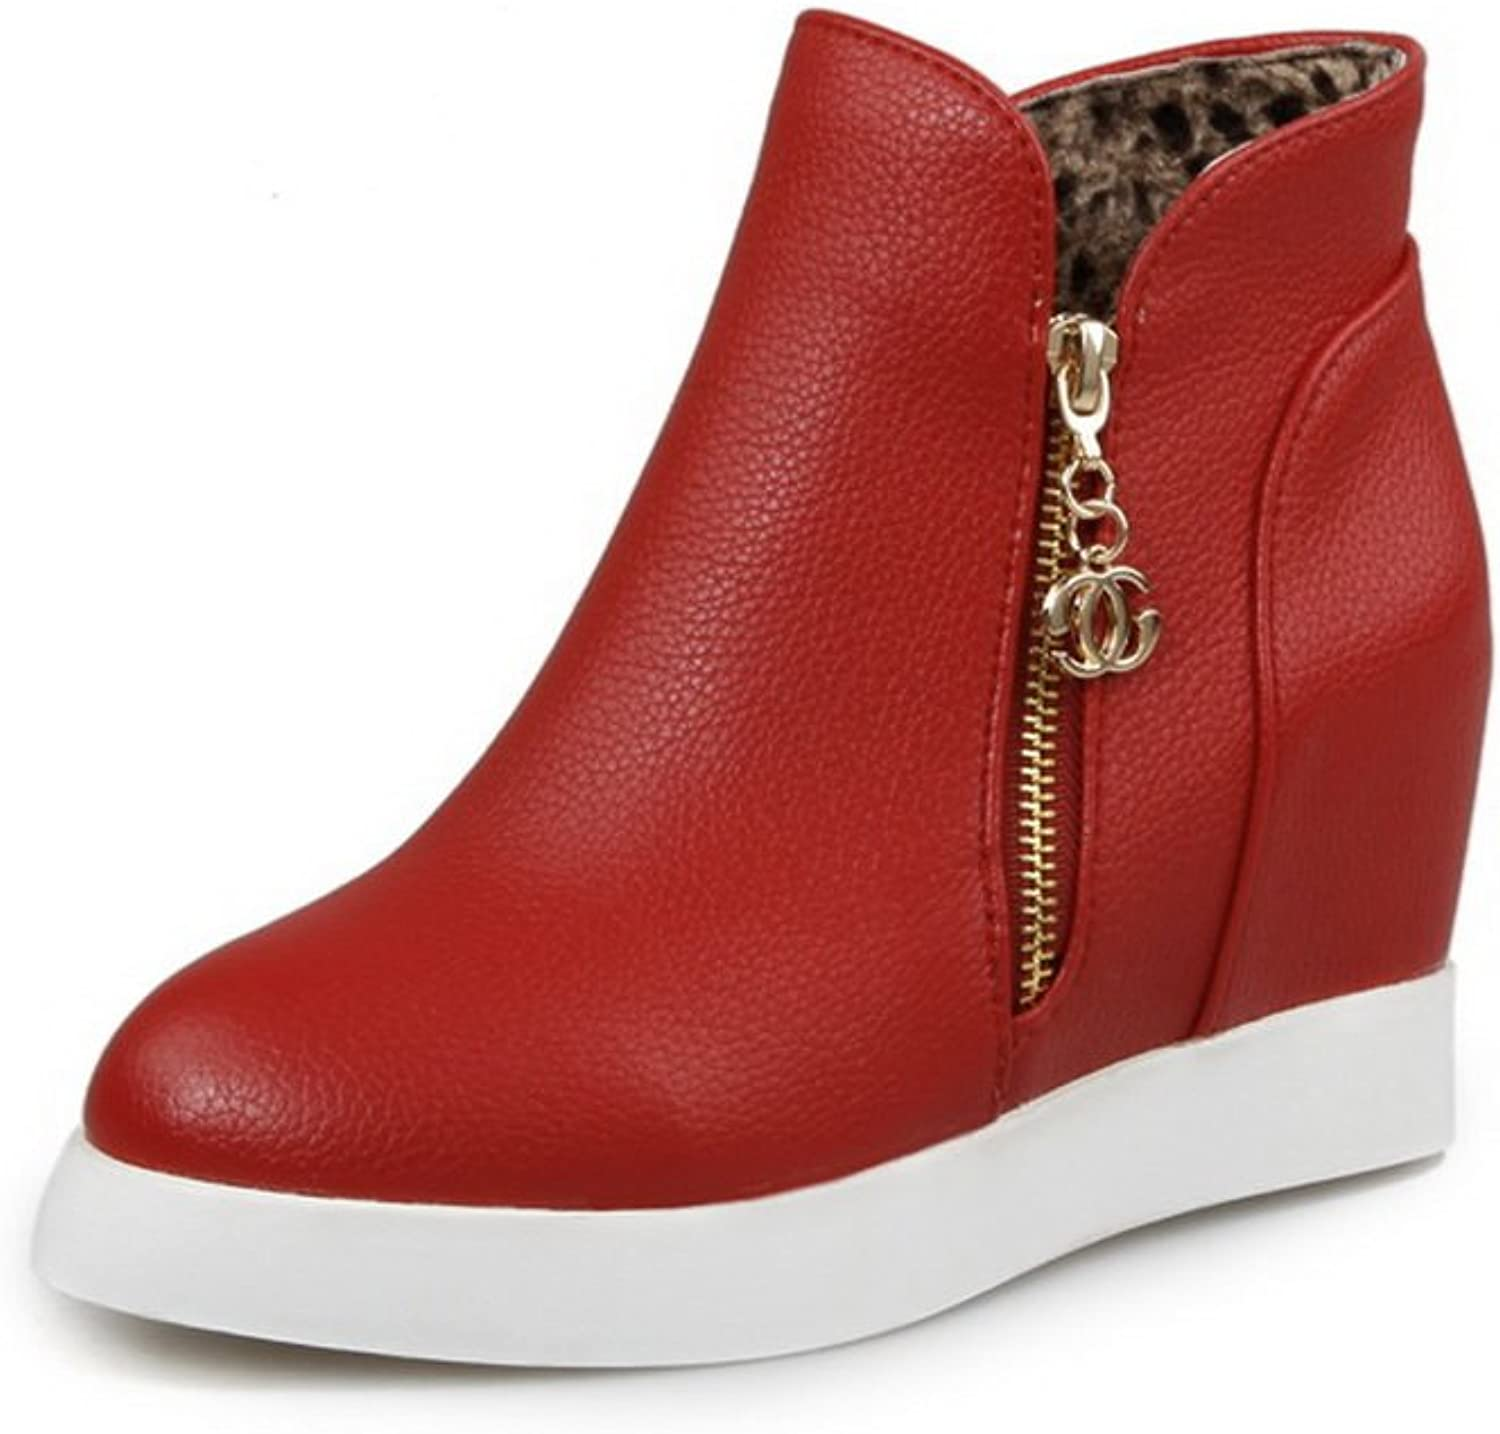 BalaMasa Ladies Metalornament Heighten Inside Zipper Red Imitated Leather Boots